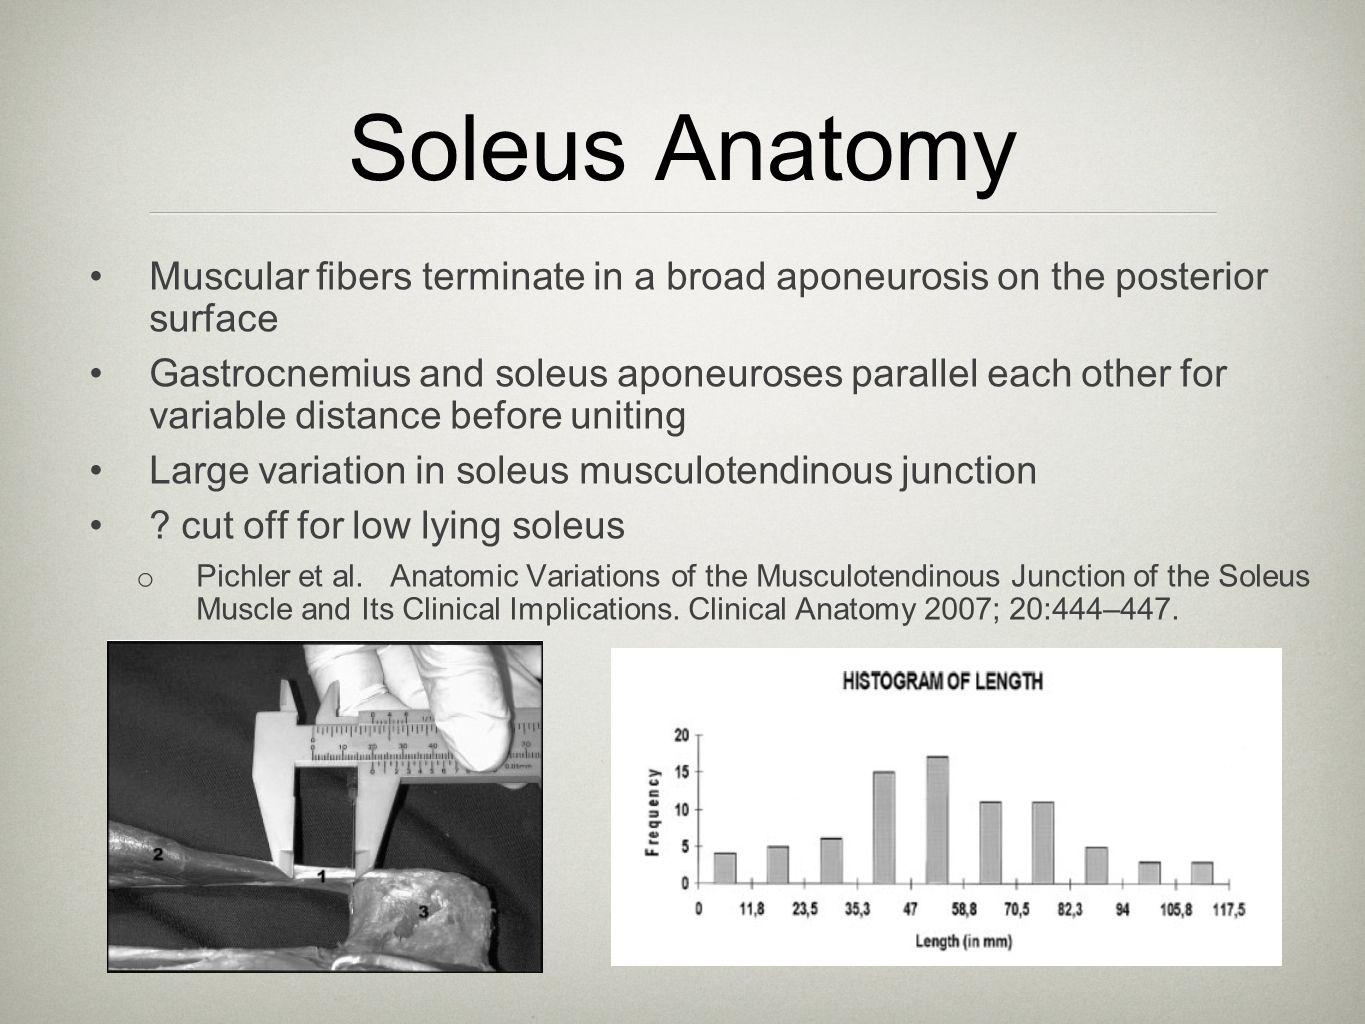 Soleus Anatomy Muscular fibers terminate in a broad aponeurosis on the posterior surface.